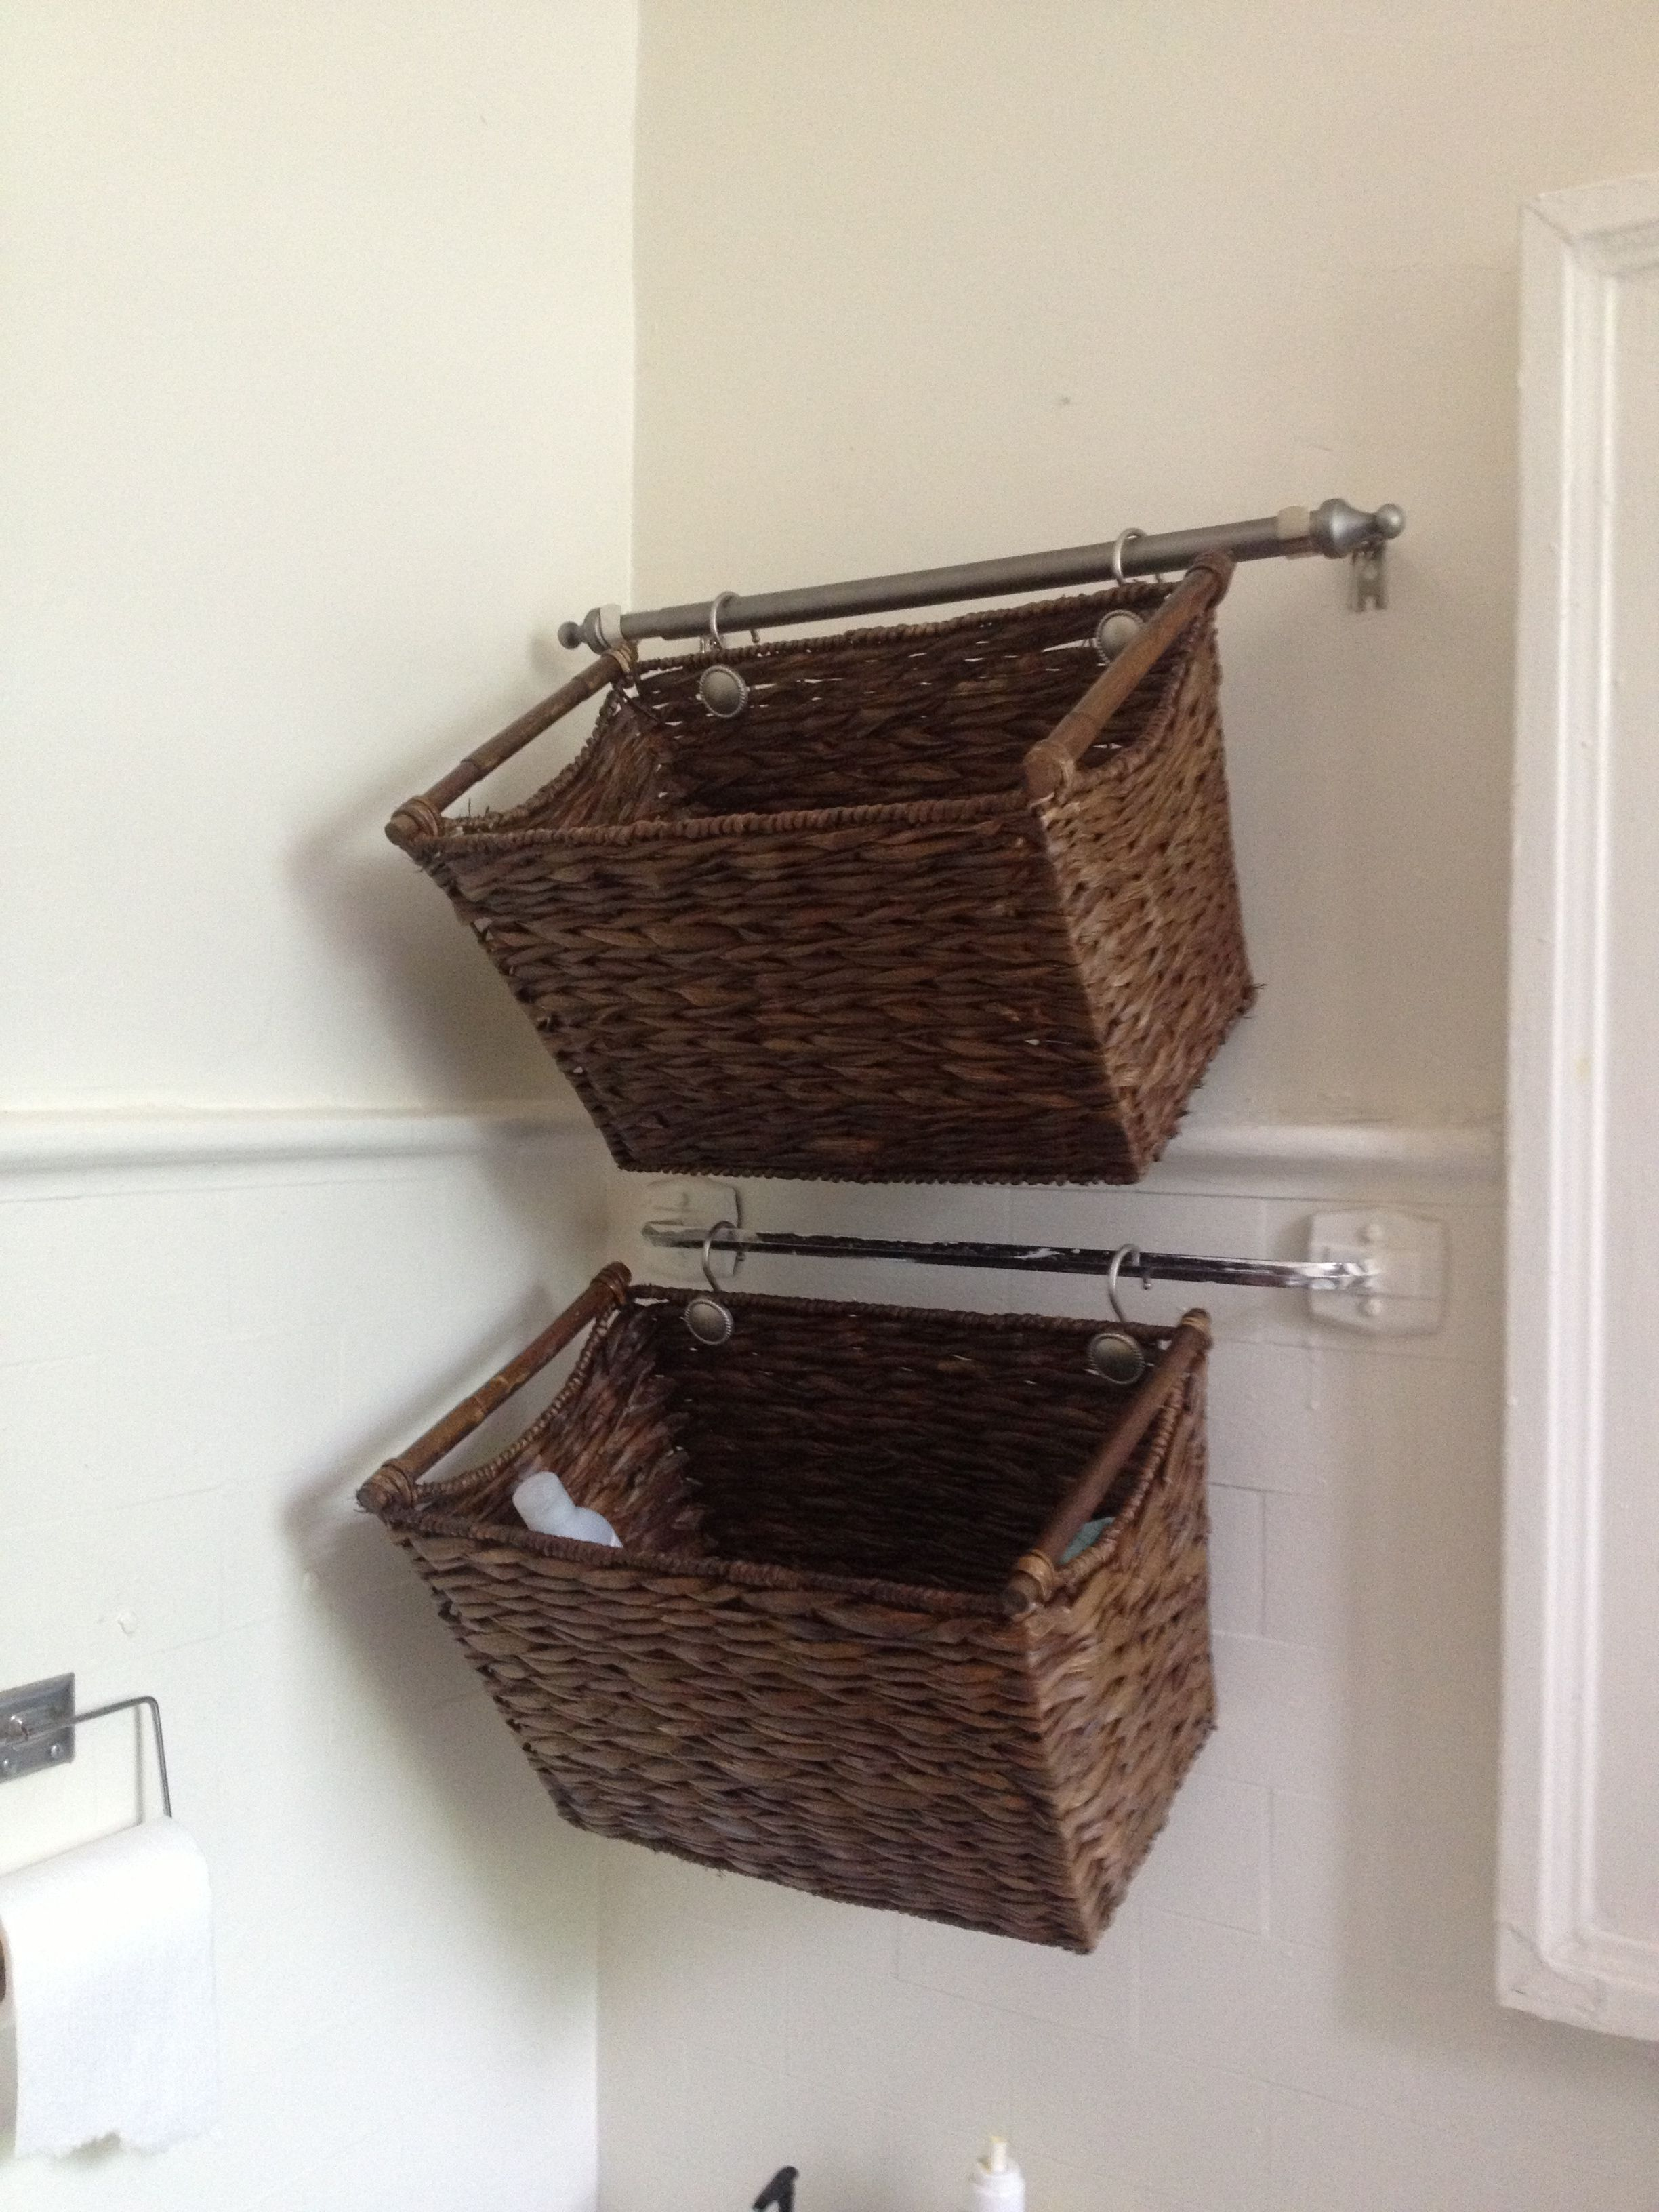 Pictures In Gallery Cut down a curtain rod and hang wicker baskets for cute u easy bathroom storage